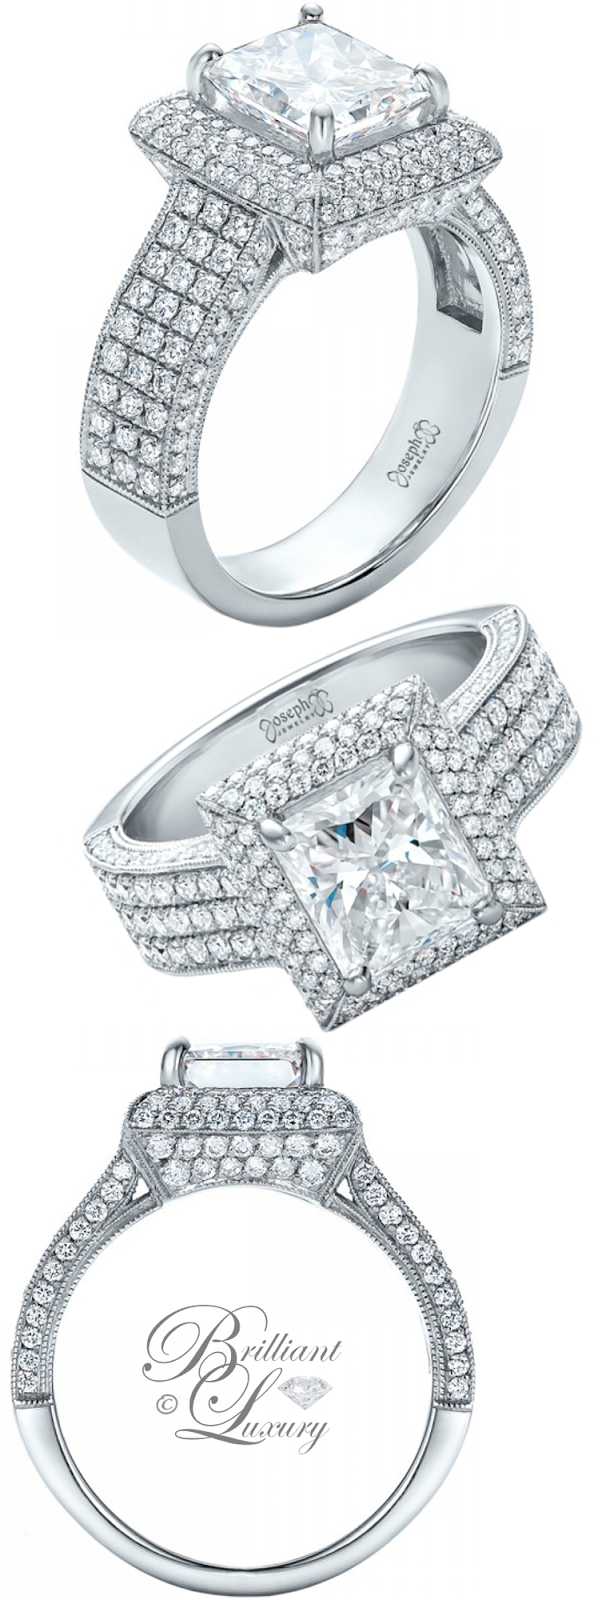 Brilliant Luxury ♦ Joseph Jewelry Custom Micro-Pave Halo Diamond Engagement Ring